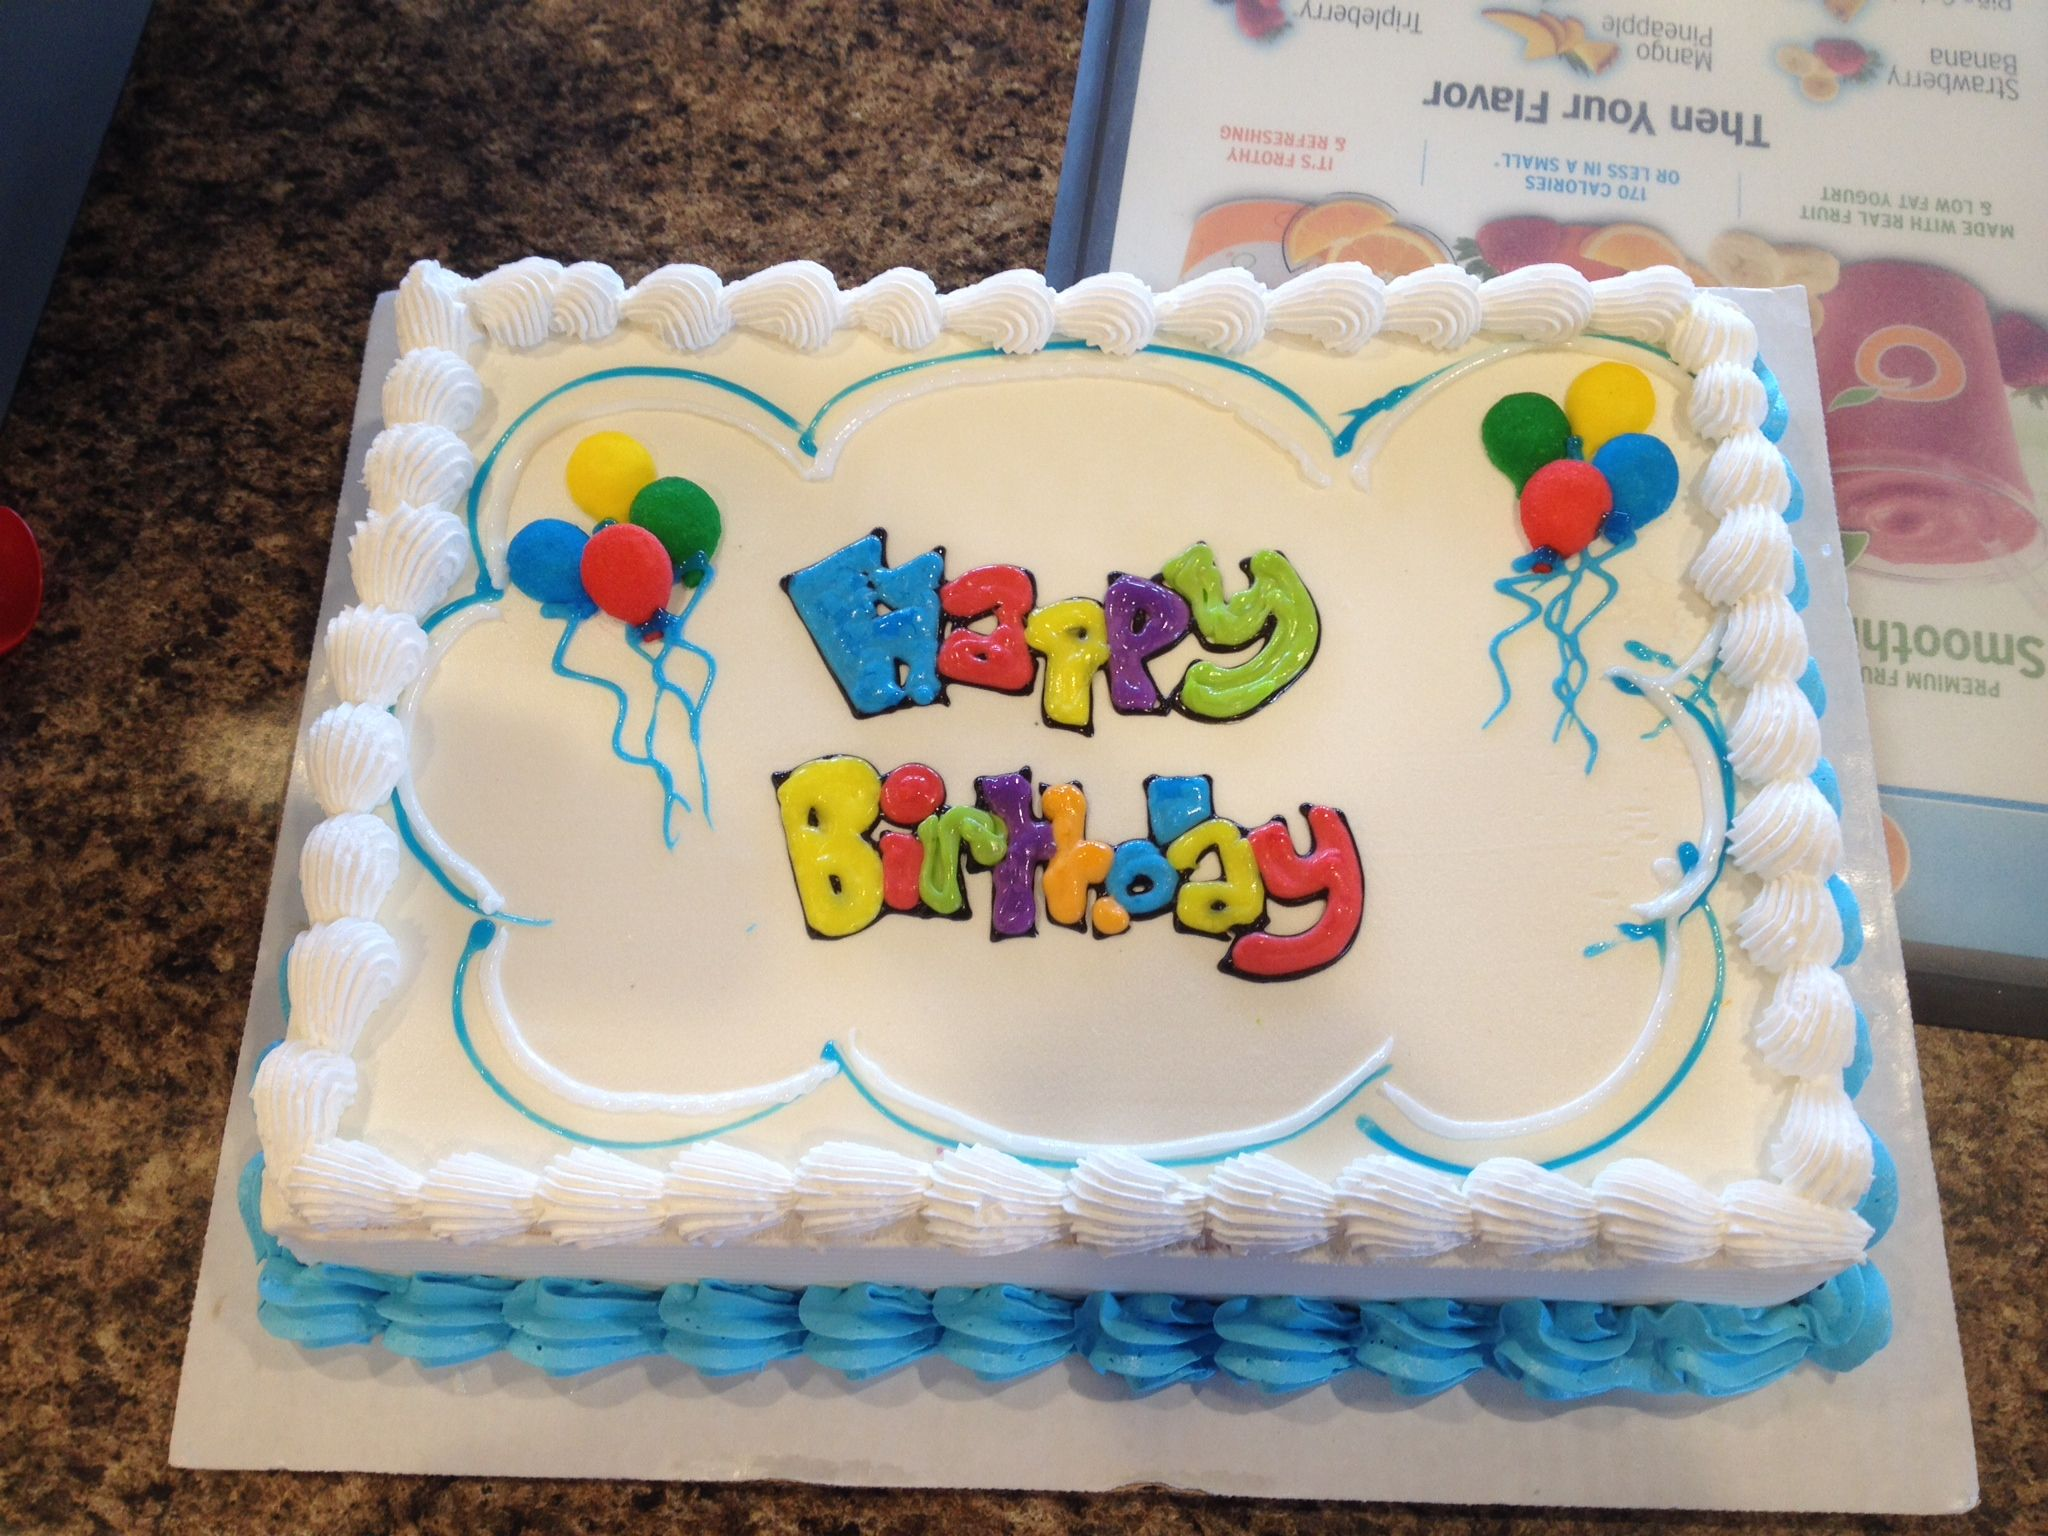 DQ cakesDairy Queen cake decorating ideas Pinterest Dairy